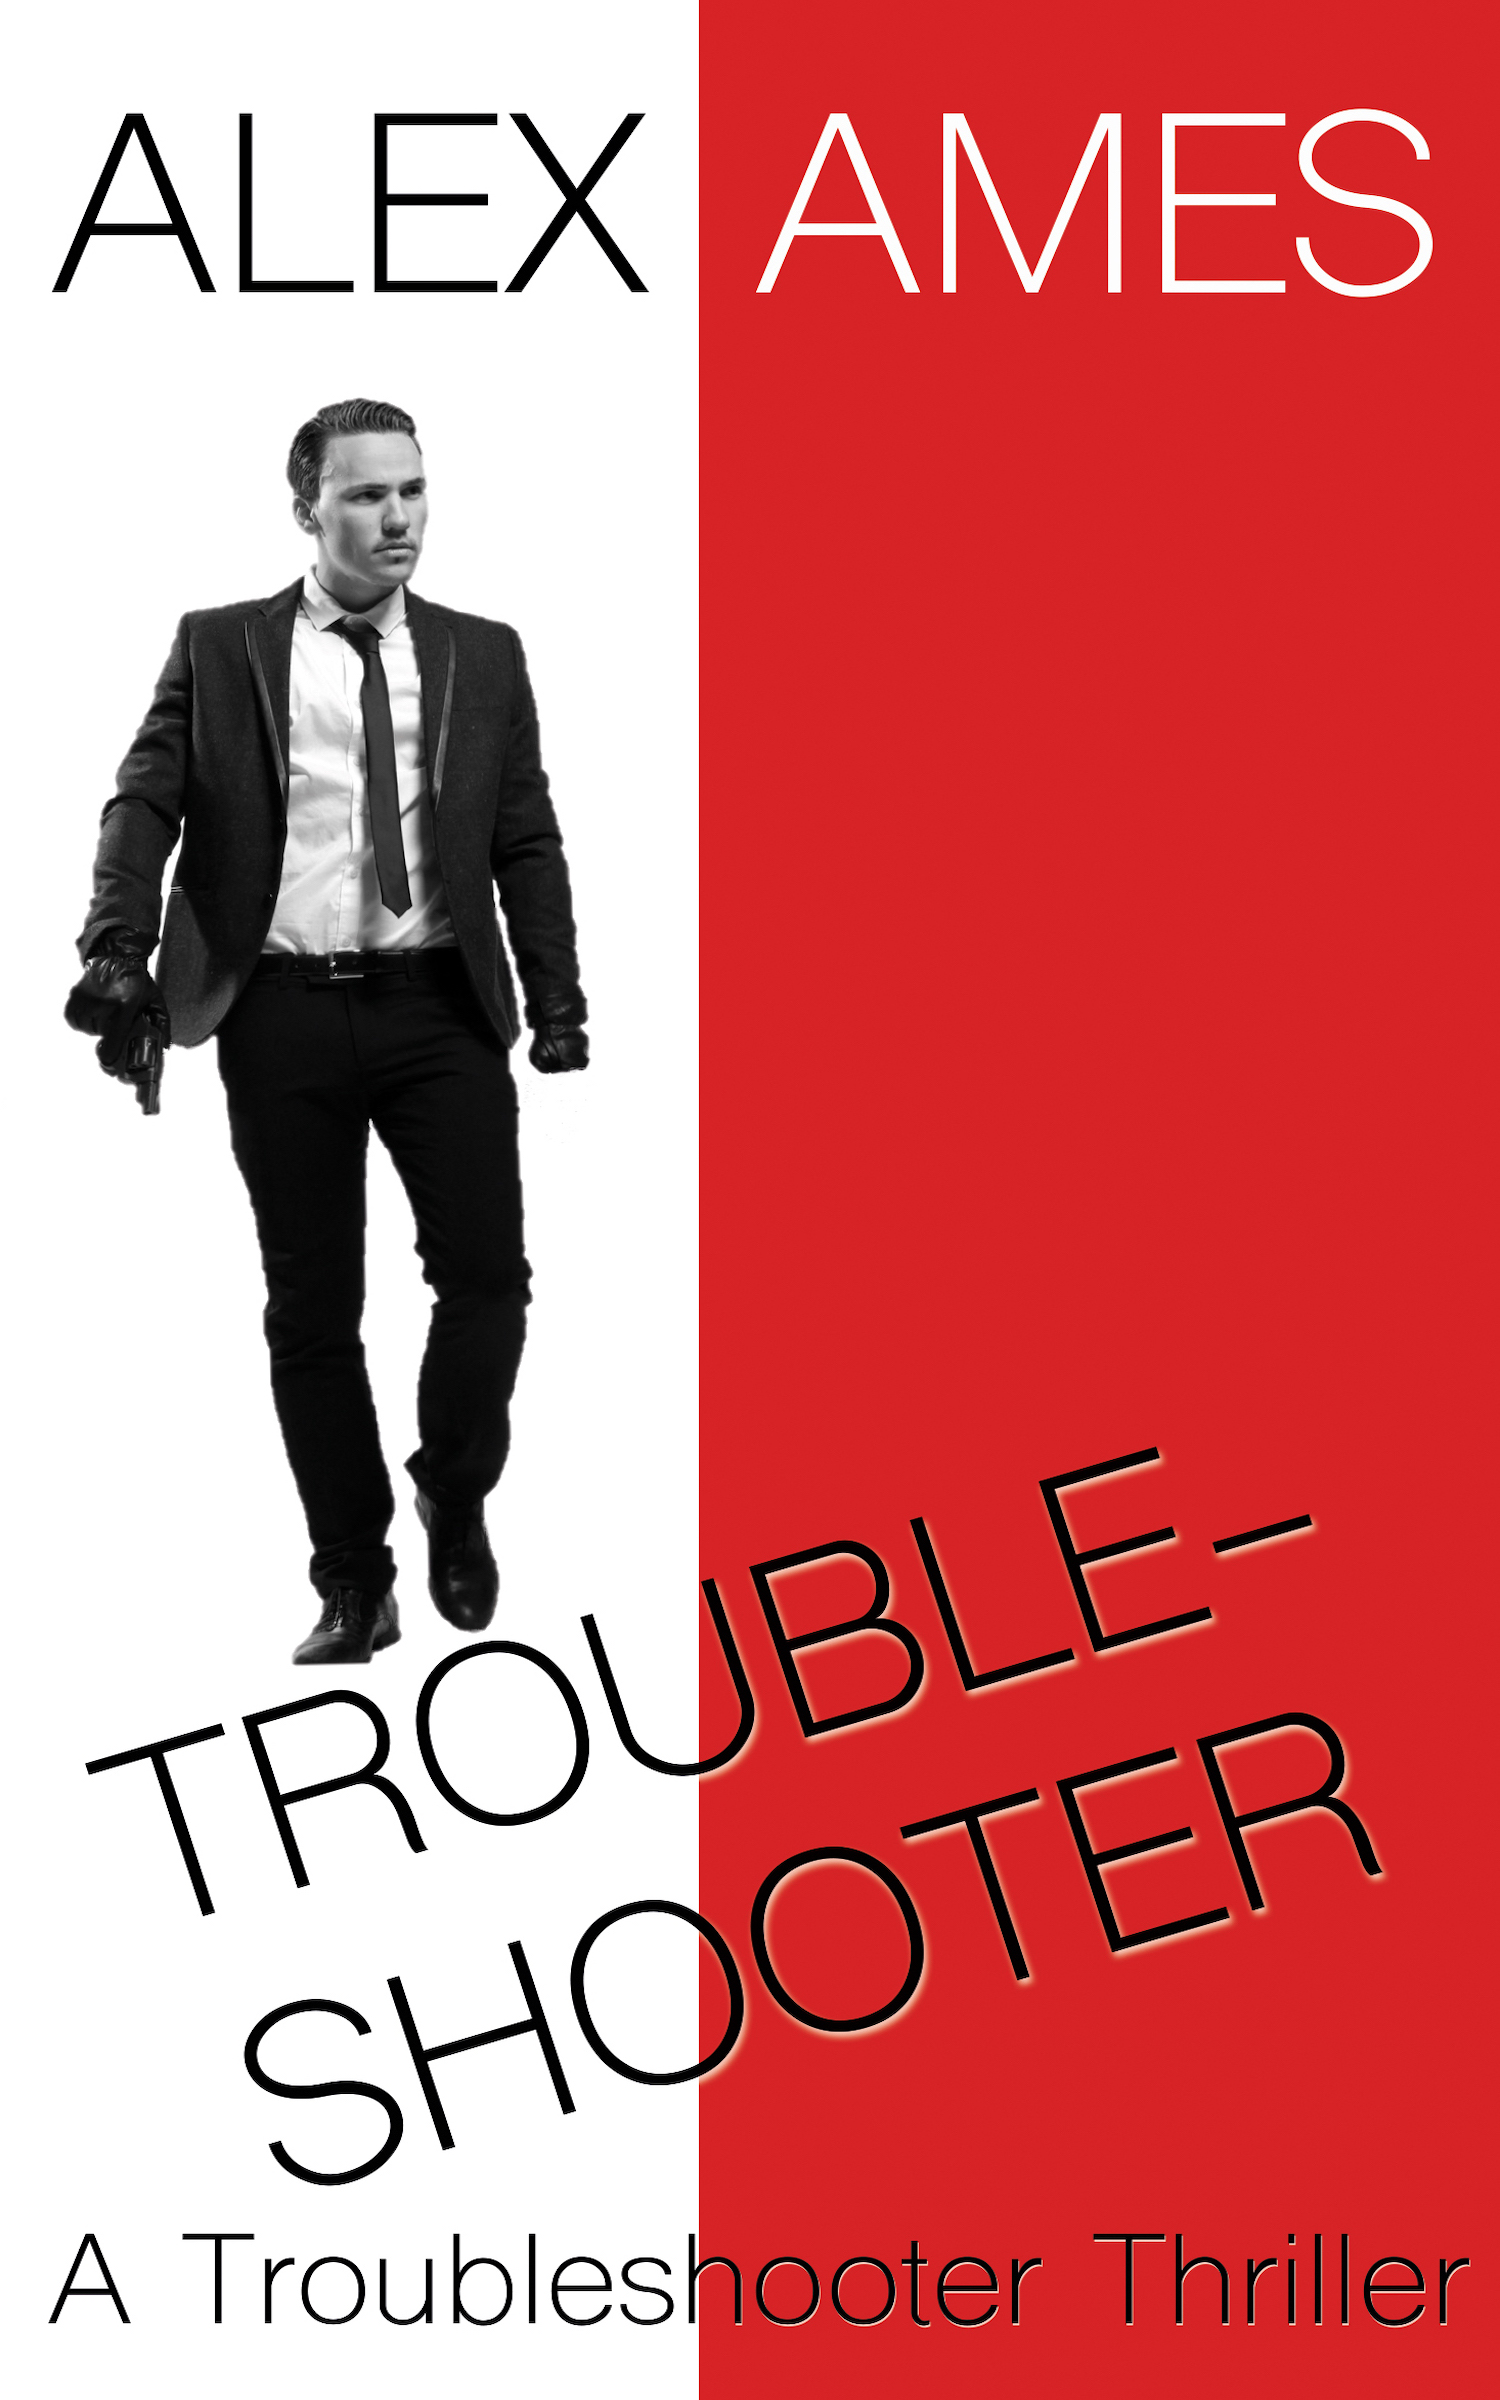 Copy of Troubleshooter